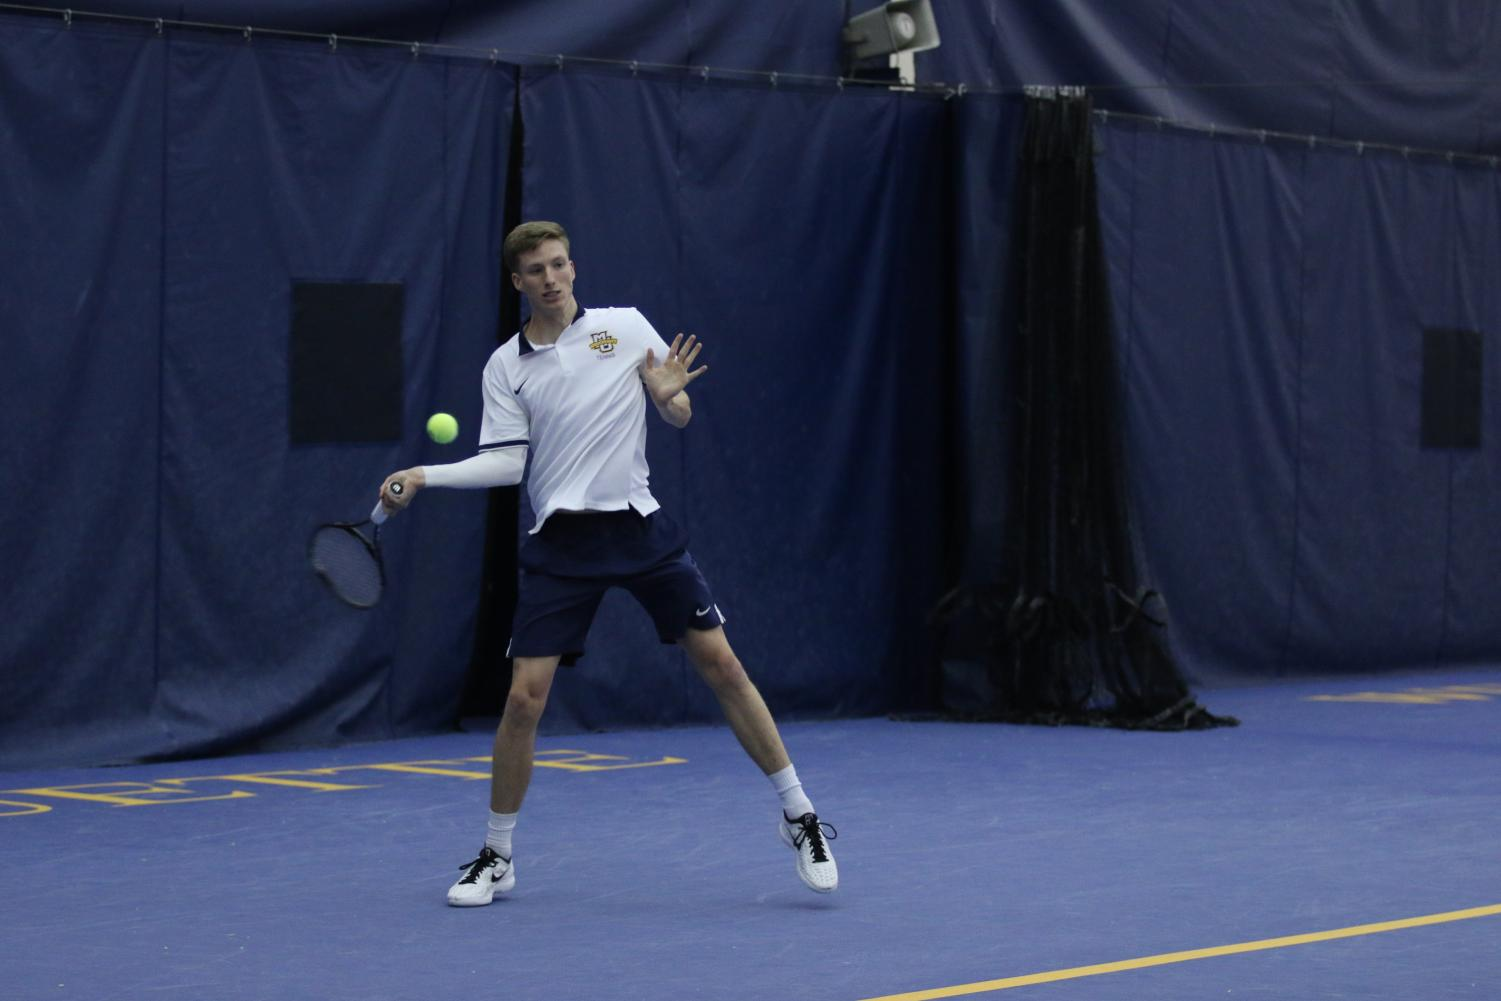 Sophomore Brett Meyers is 17-9 in singles matches this year, the best mark on Marquette's team.